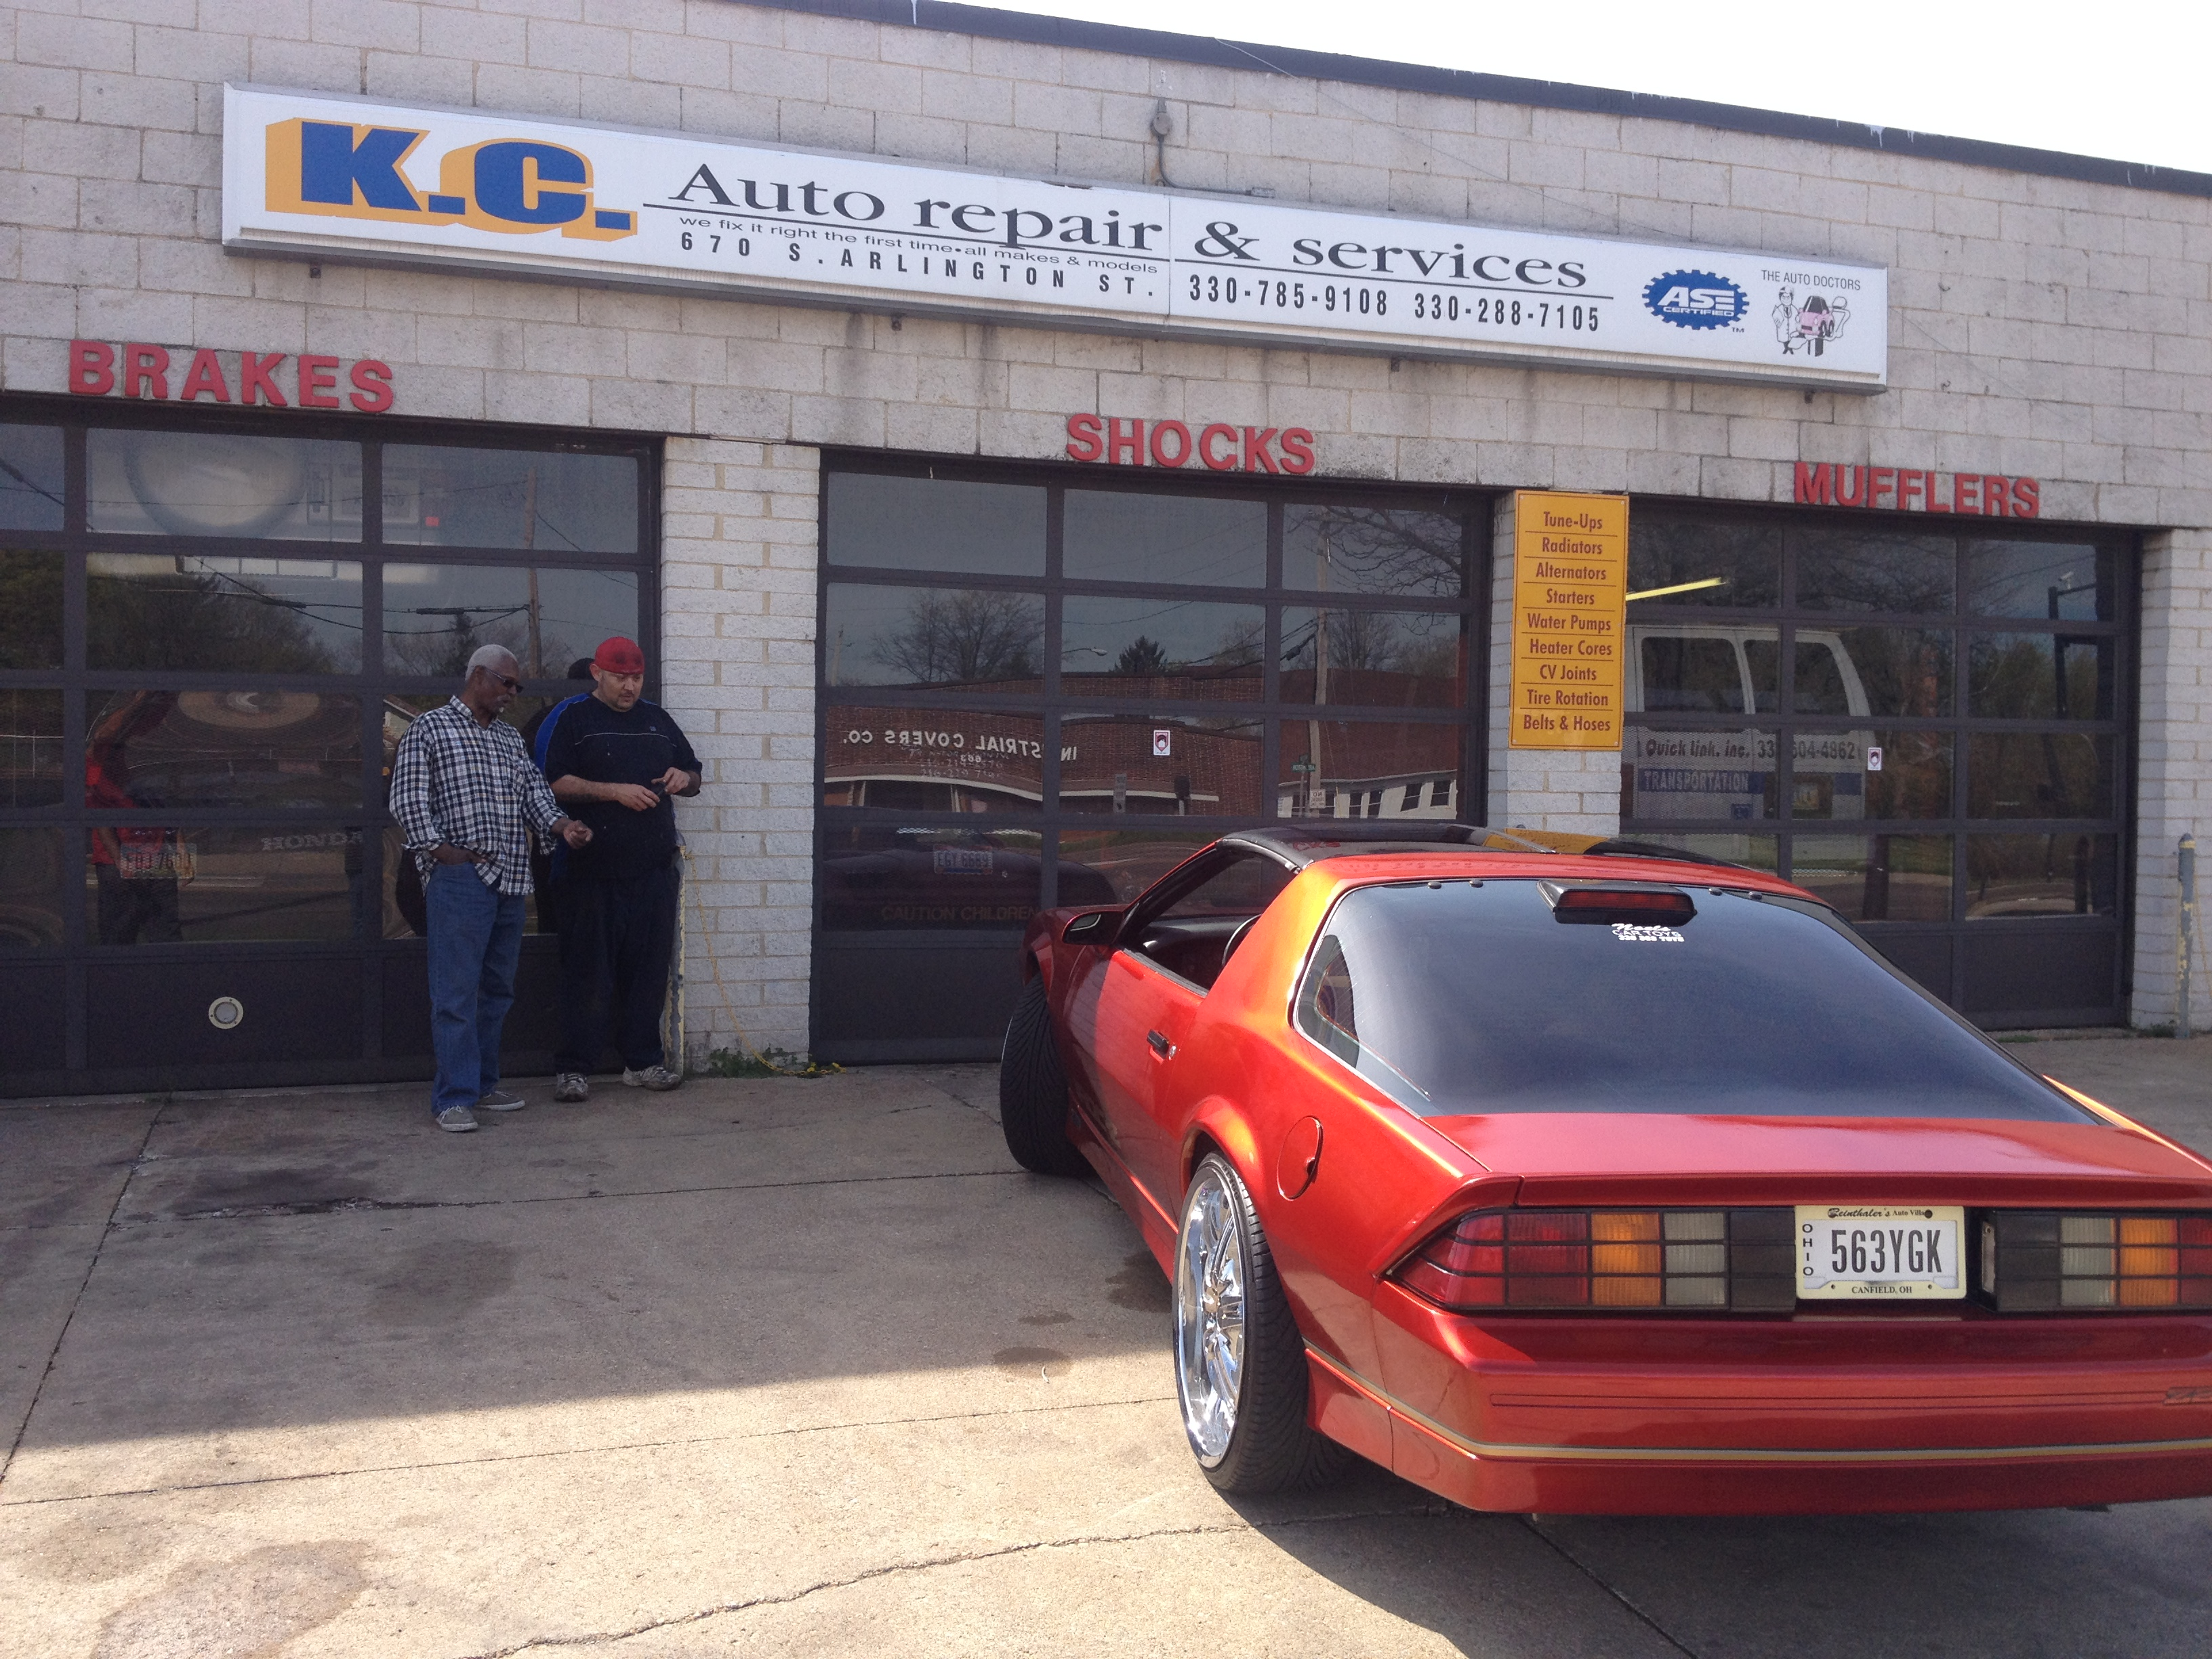 Kc Auto Repair & Services, Inc.